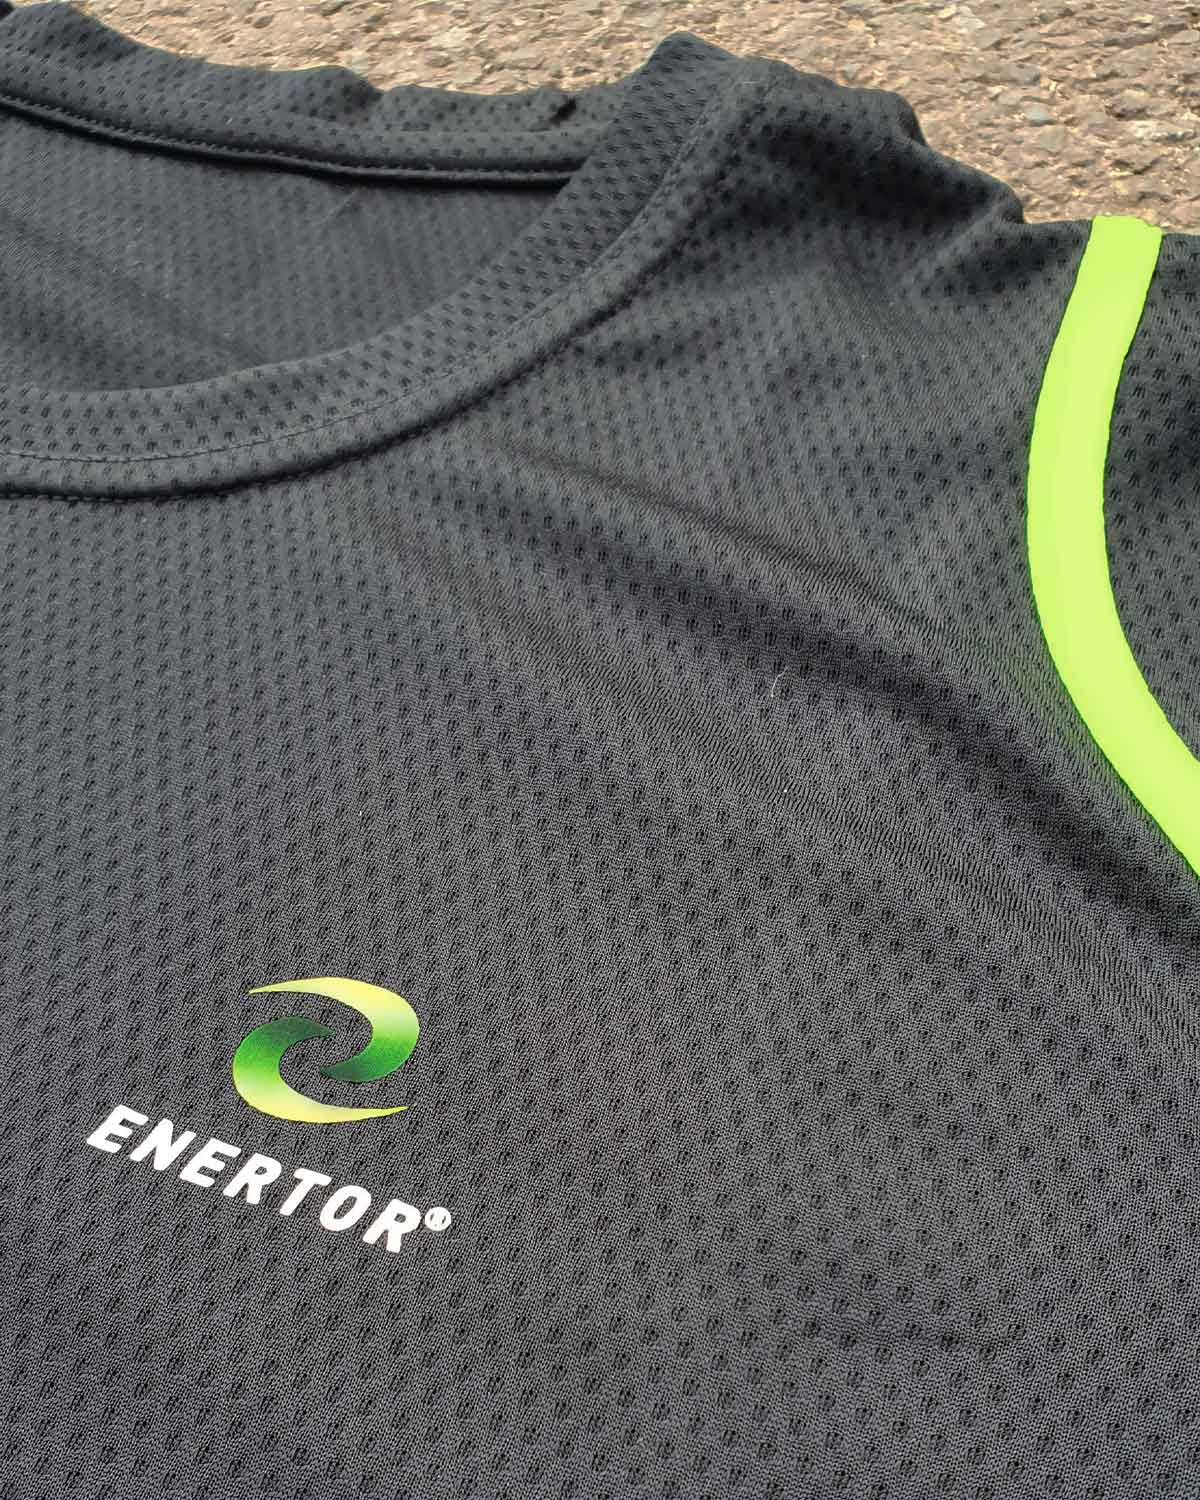 Enertor Breathable T-shirt Logo Top With Green Luminous Stripes in black close up ground shot